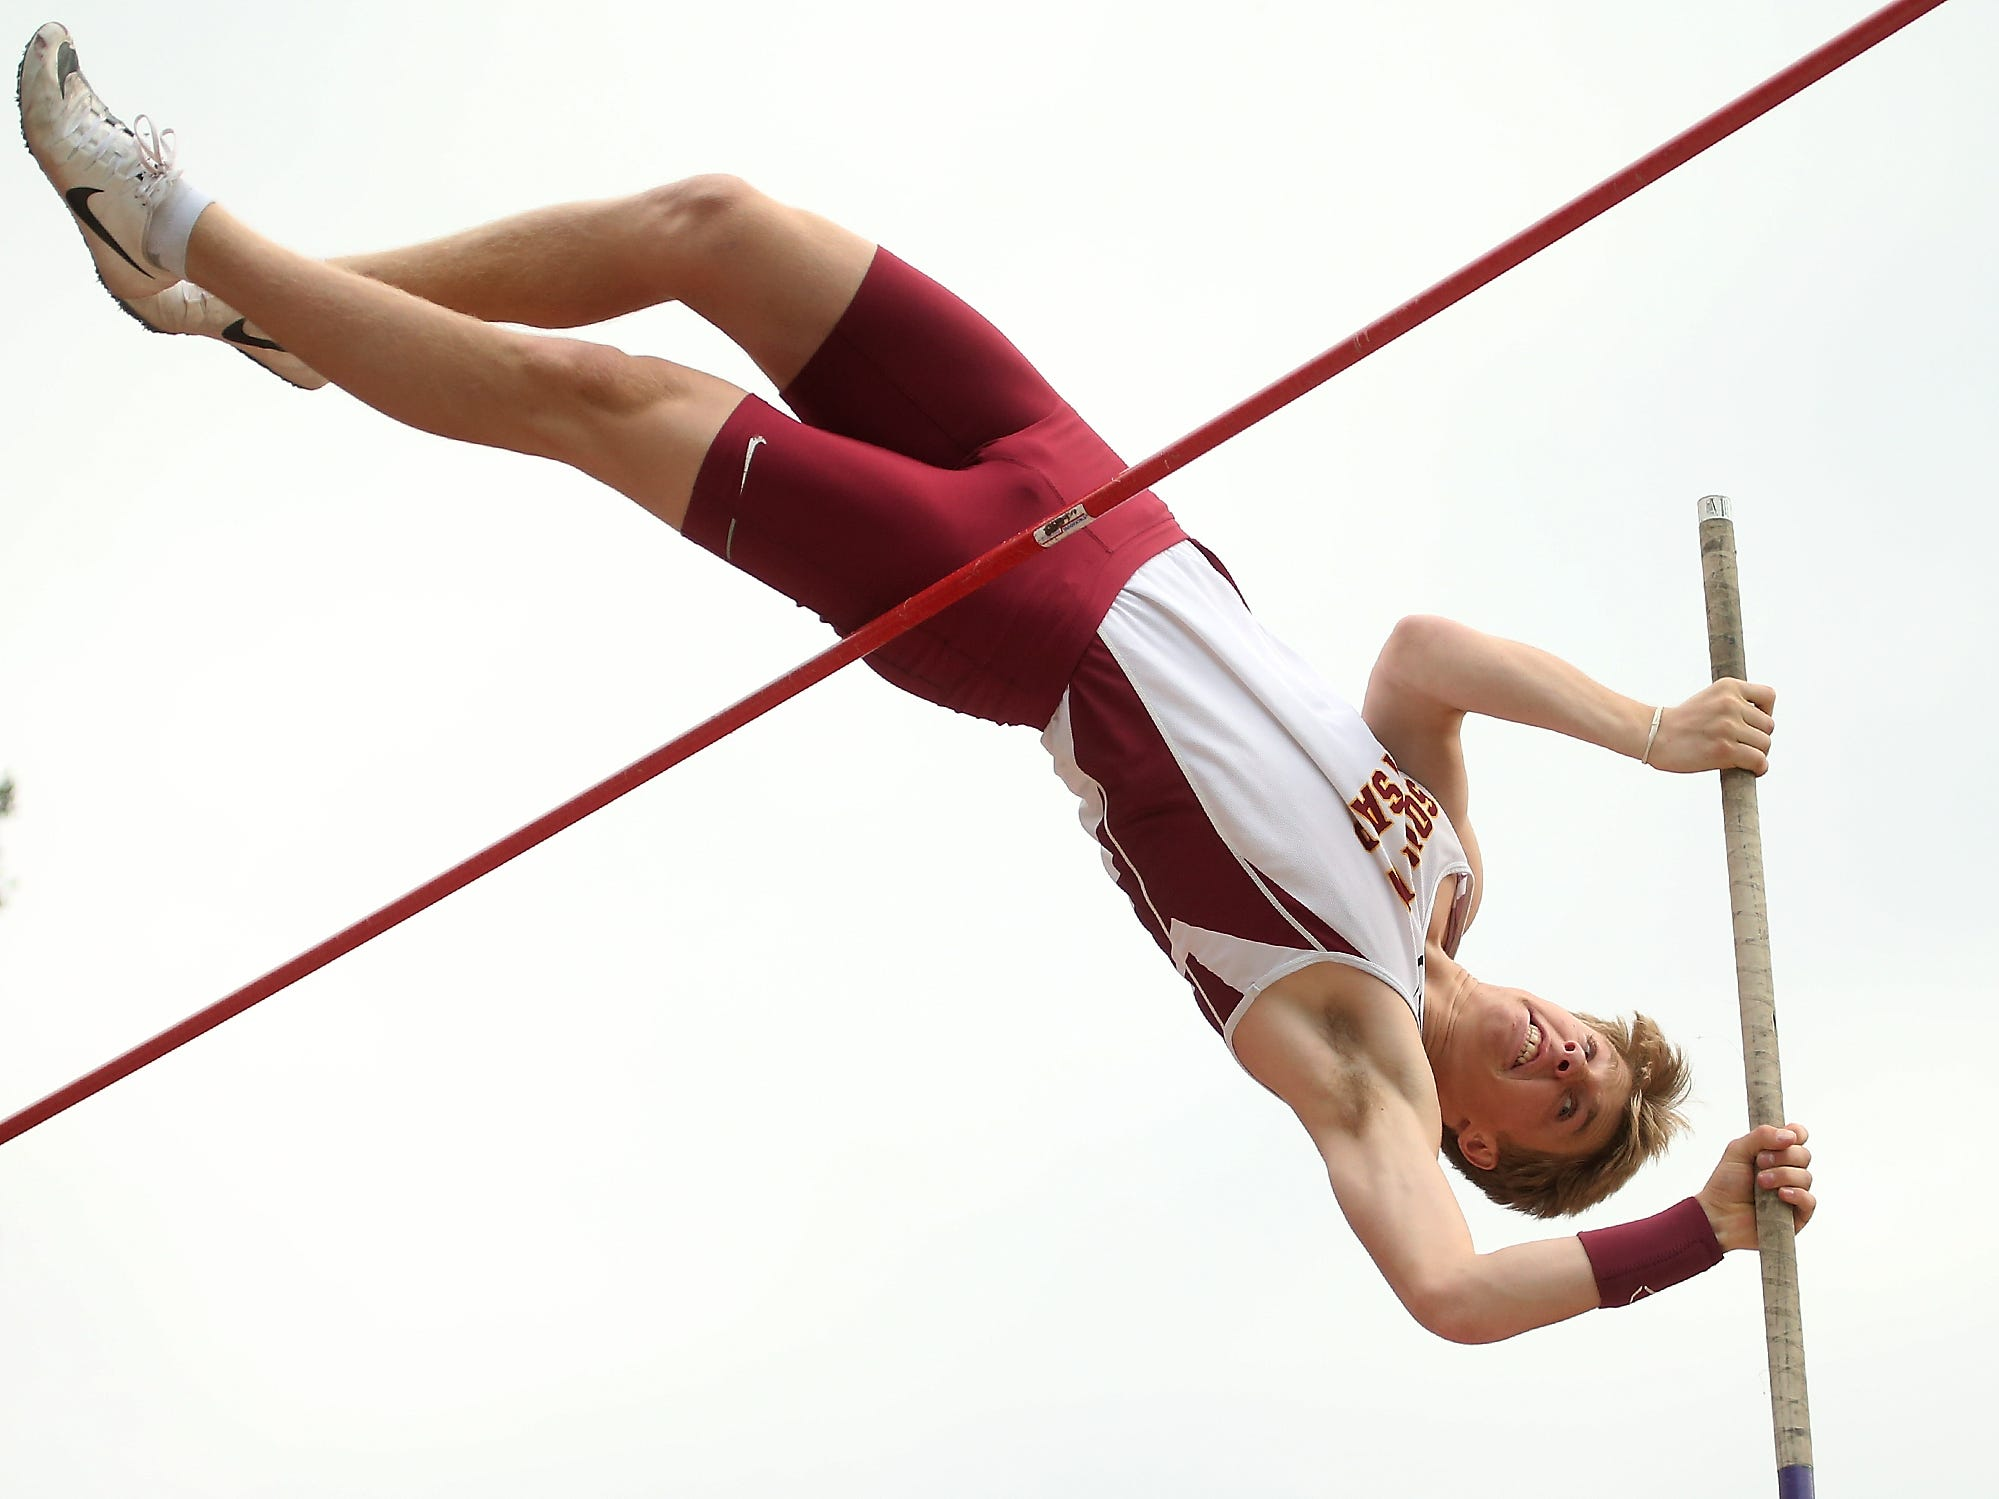 South Kitsap's Ryan Thoma clears 14-00.00 for a PR during their meet against Central Kitsap at Silverdale Stadium on Friday, May 4, 2018